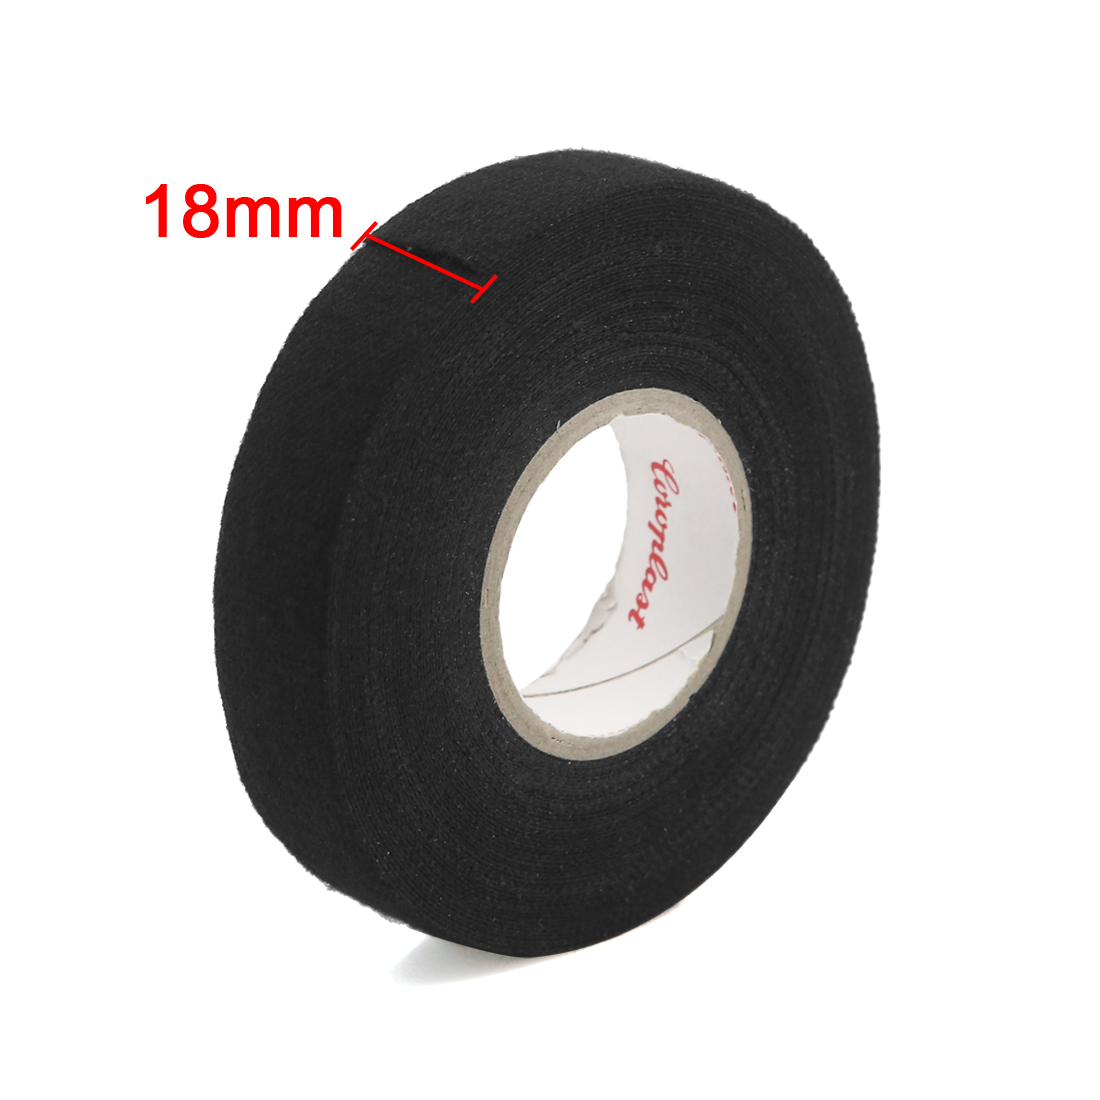 Black Nylon Auto Electrical Wiring Harness Insulating Tape 18mm Adhesive Width For Car